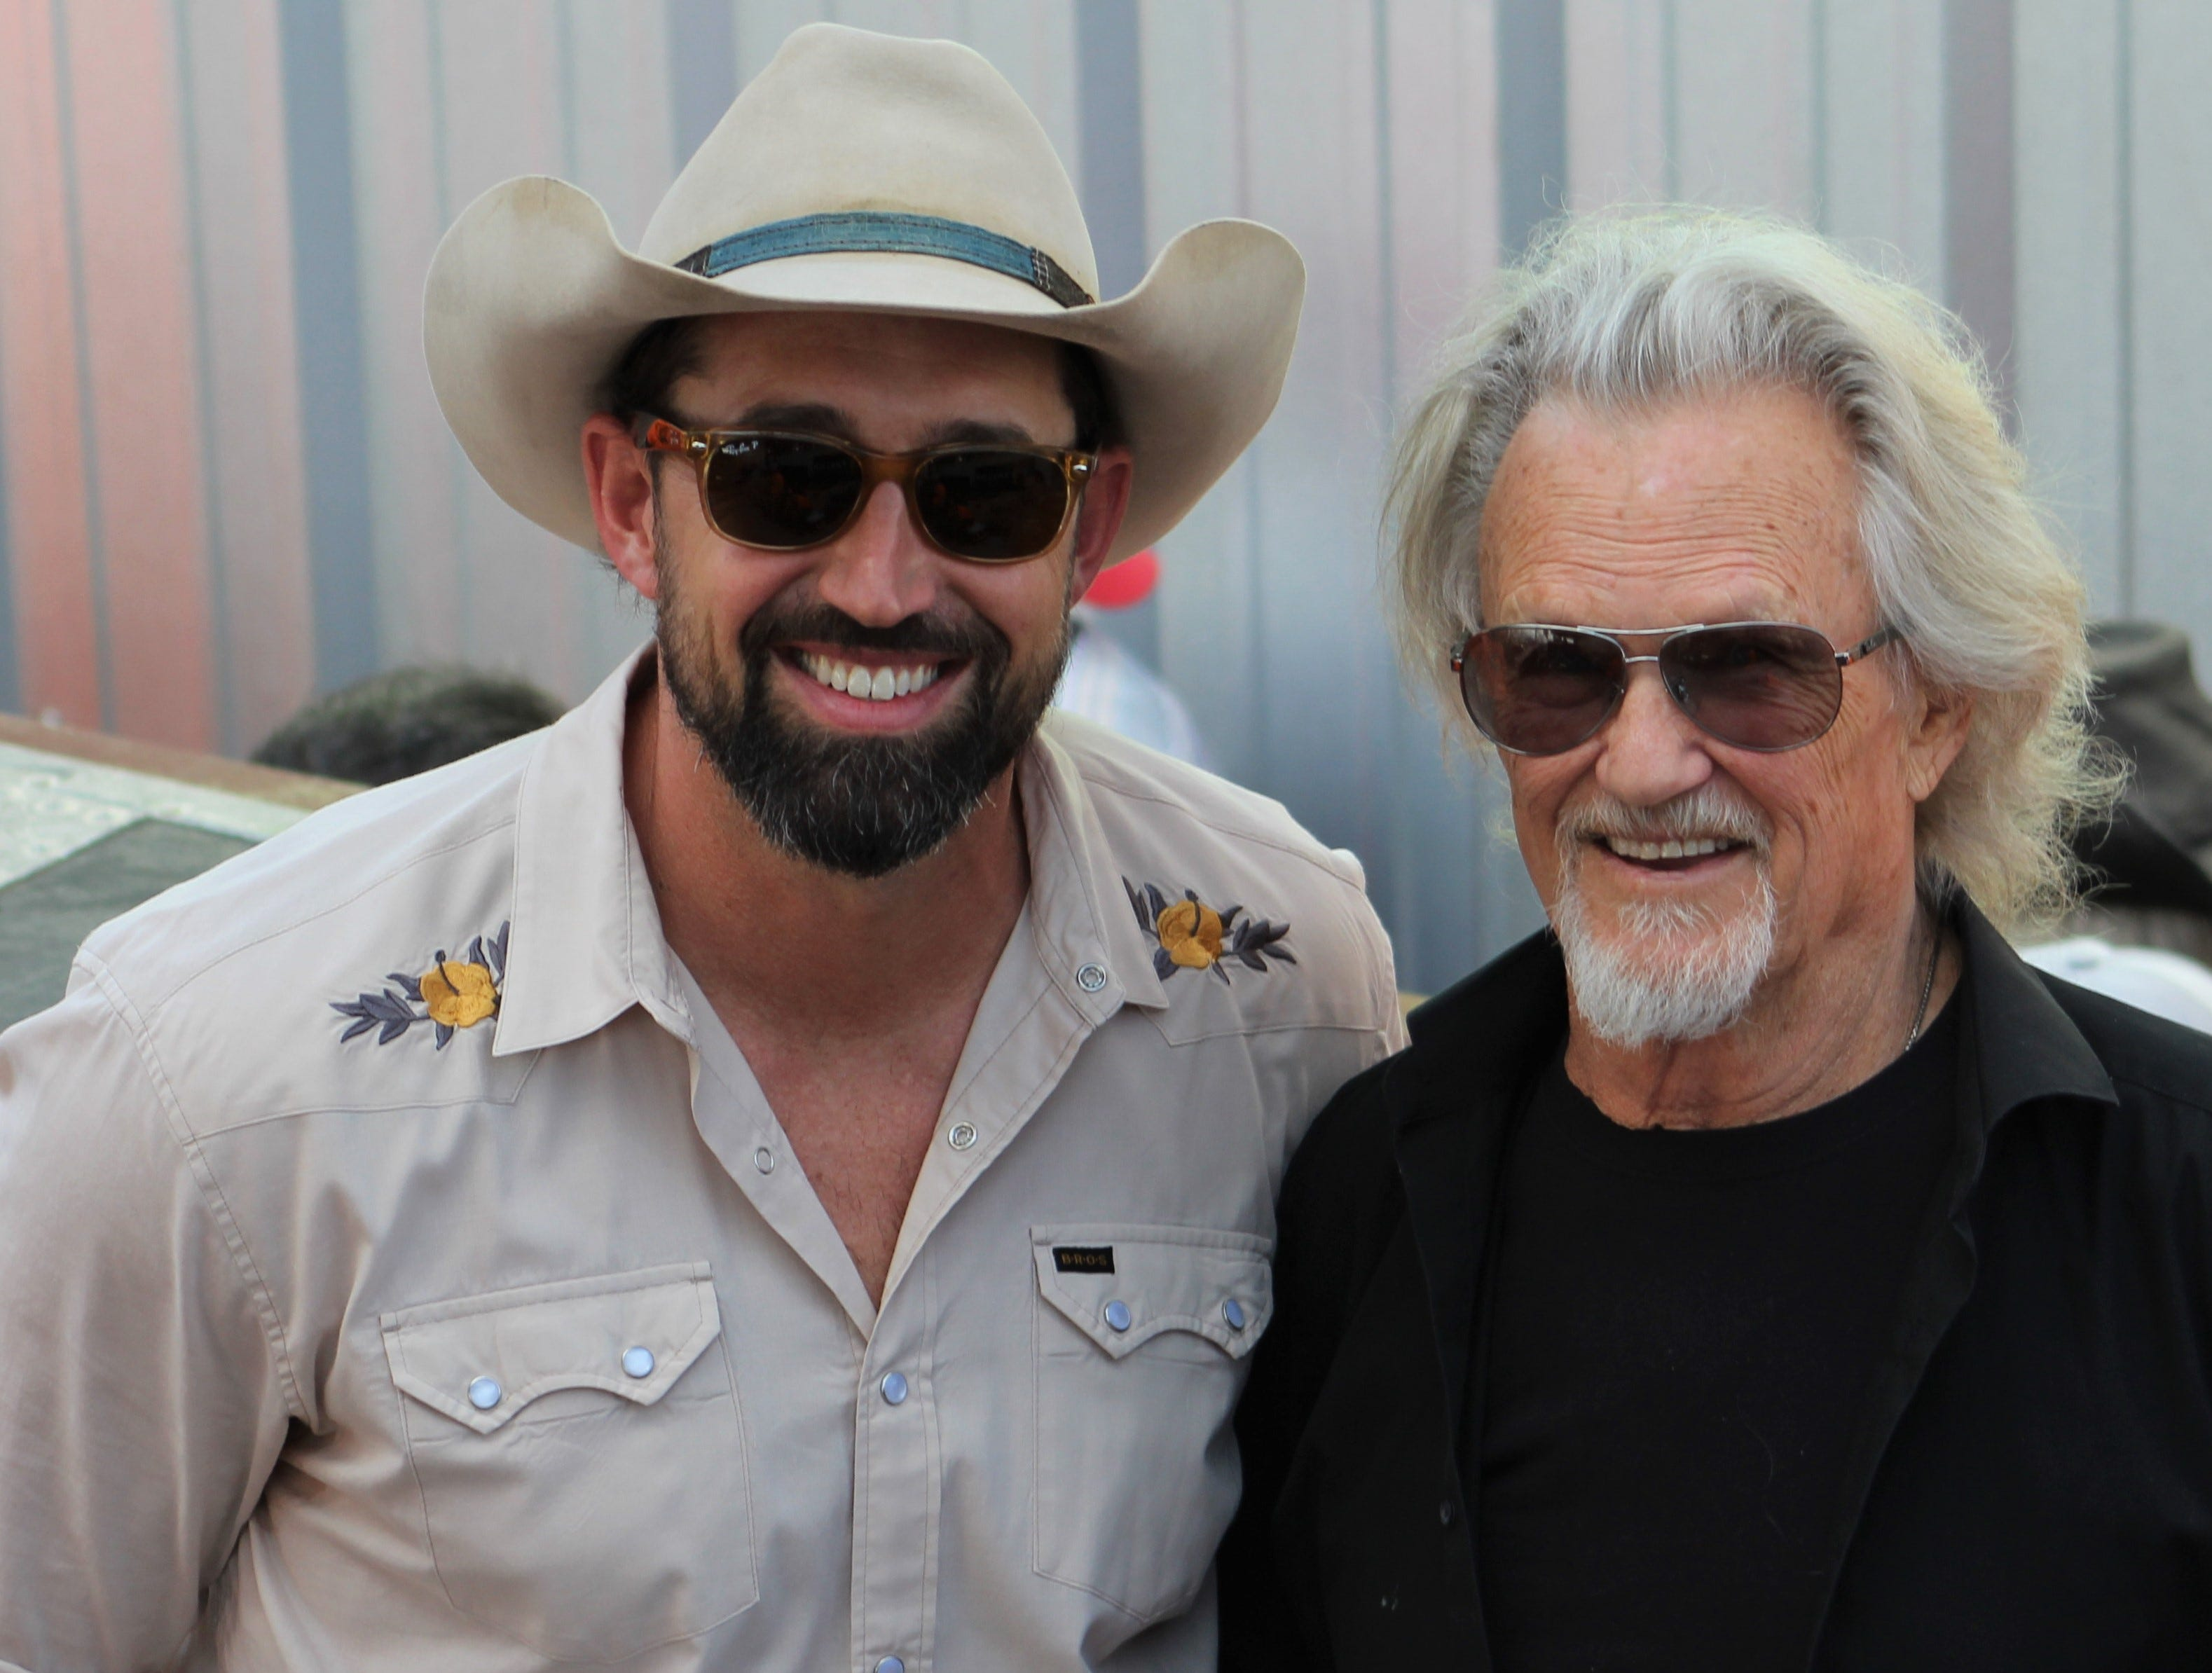 Outlaws & Legends Music Festival organizer and performer Mark Powell, left, with Saturday evening headliner Kris Kristofferson at the Back Porch of Texas stage.